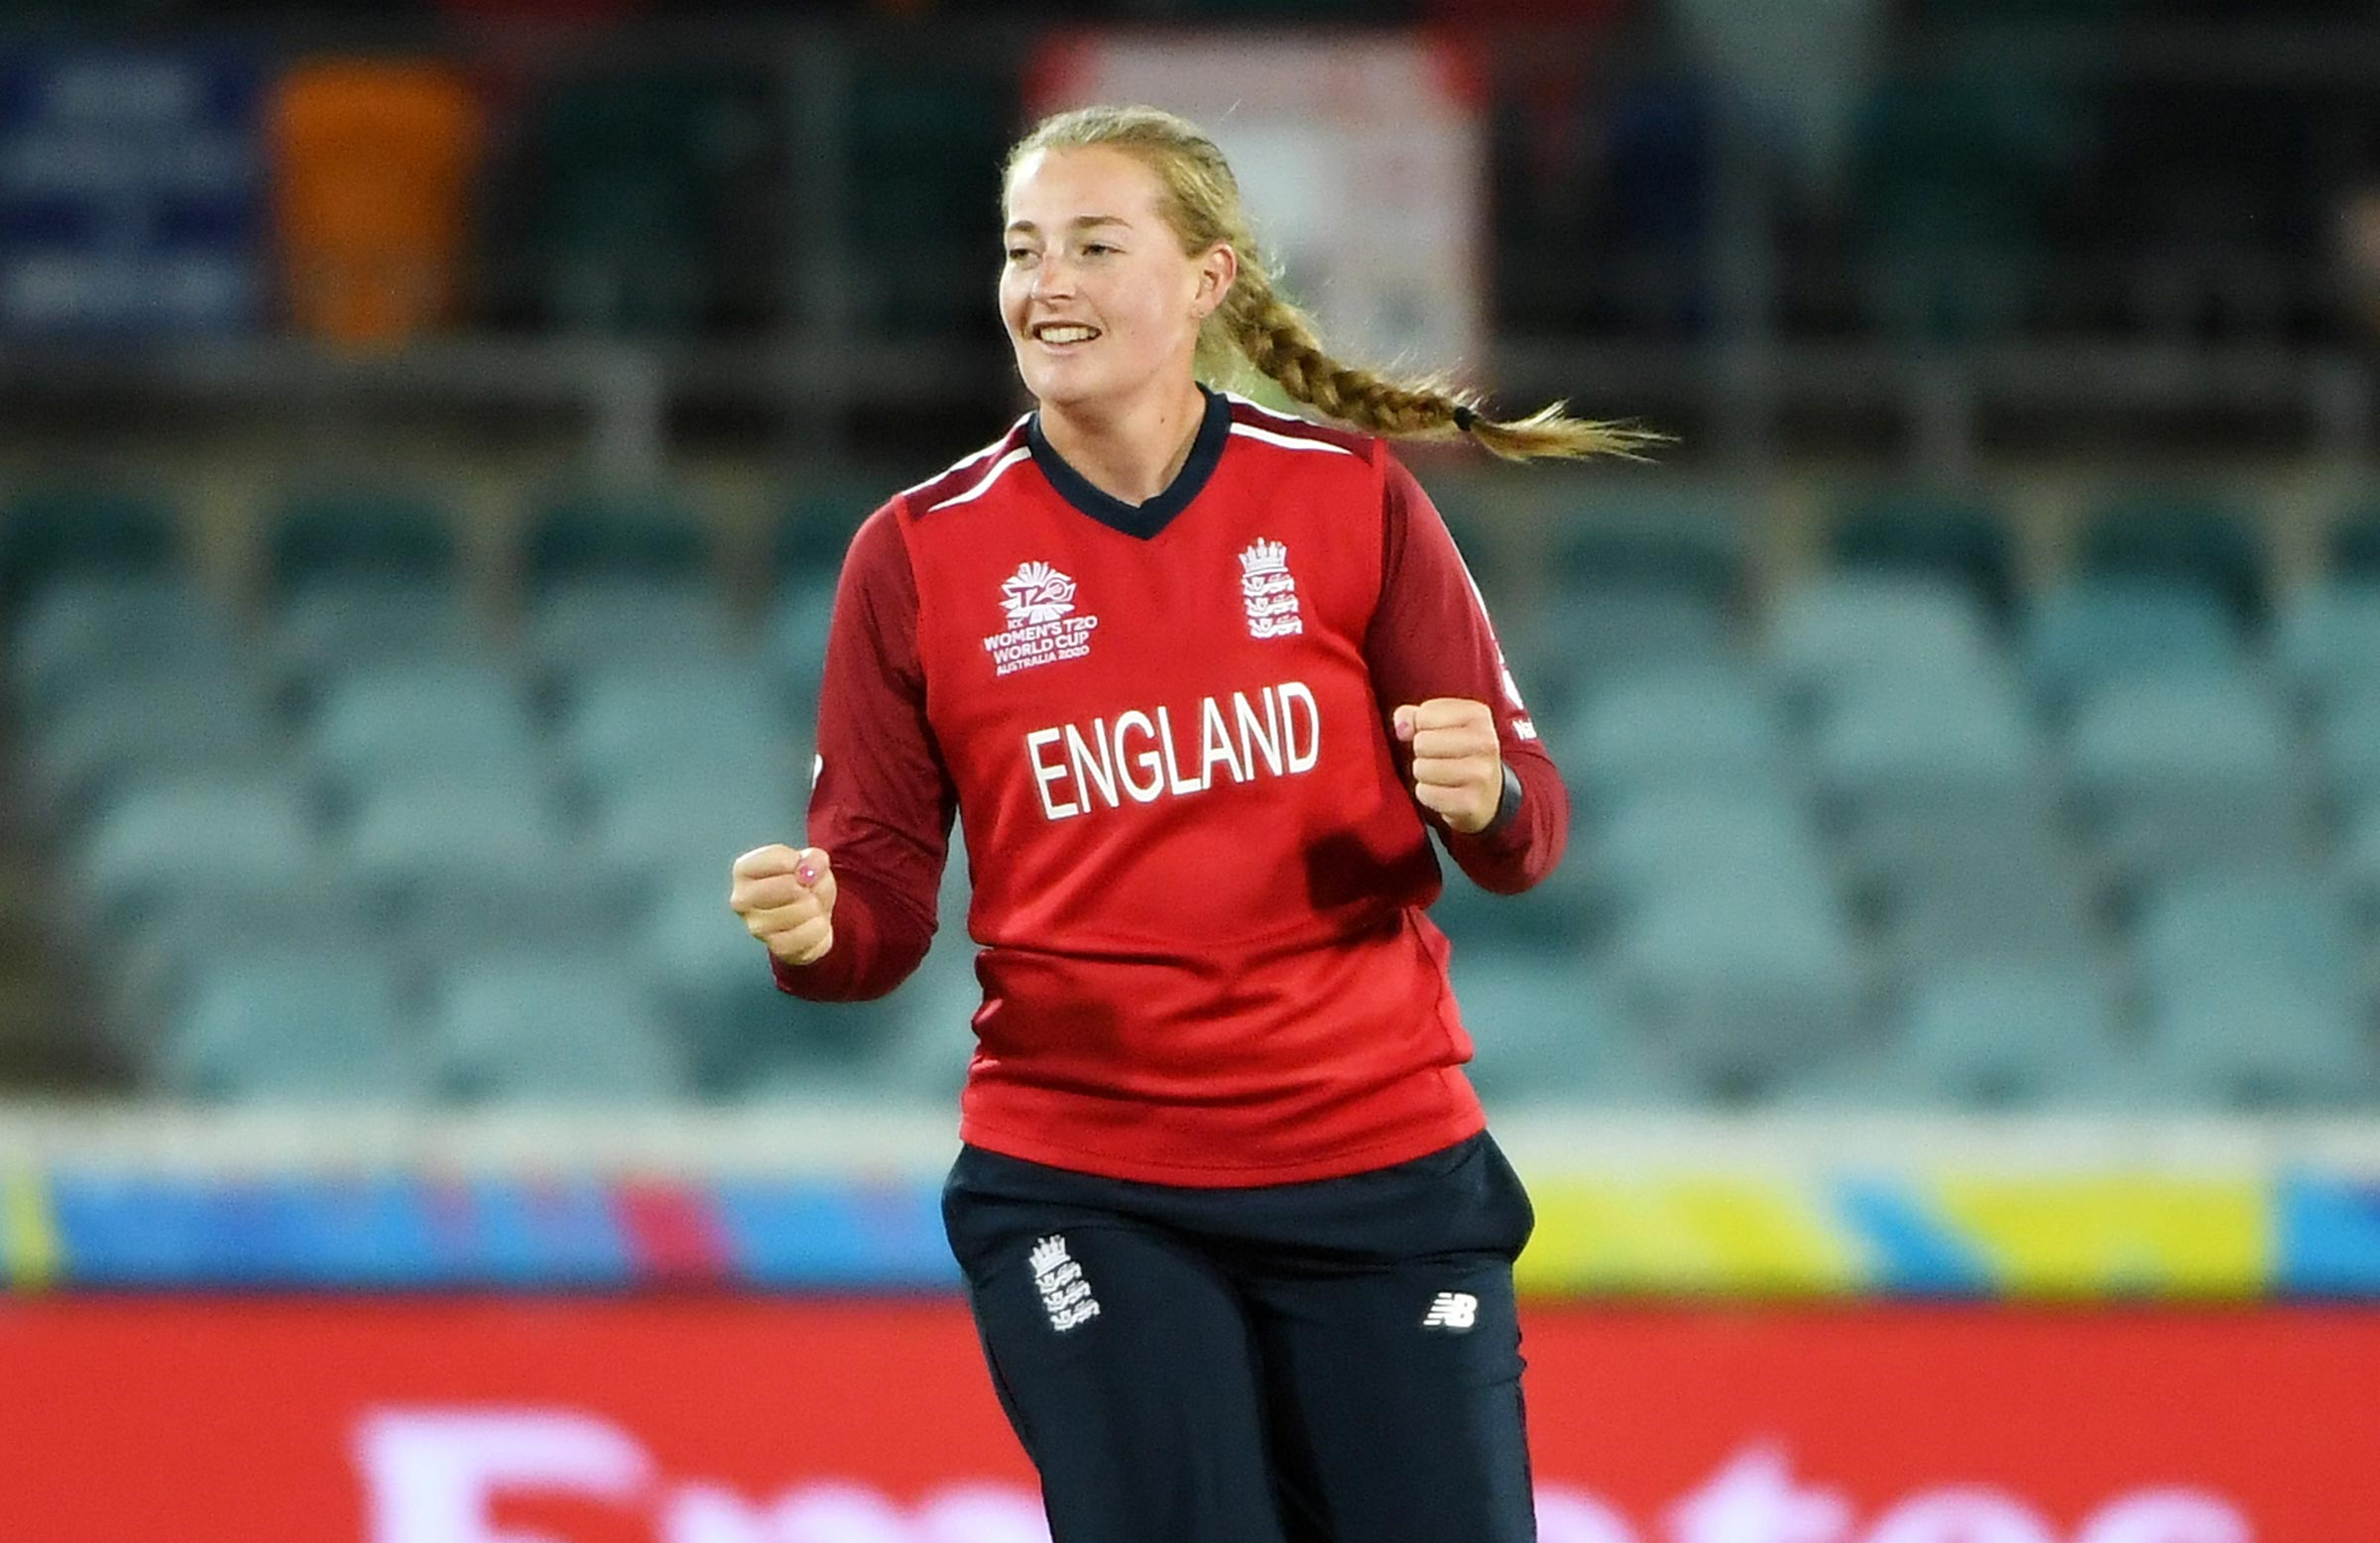 Ecclestone showed why she's regarded as one of the brightest prospects in cricket // Getty